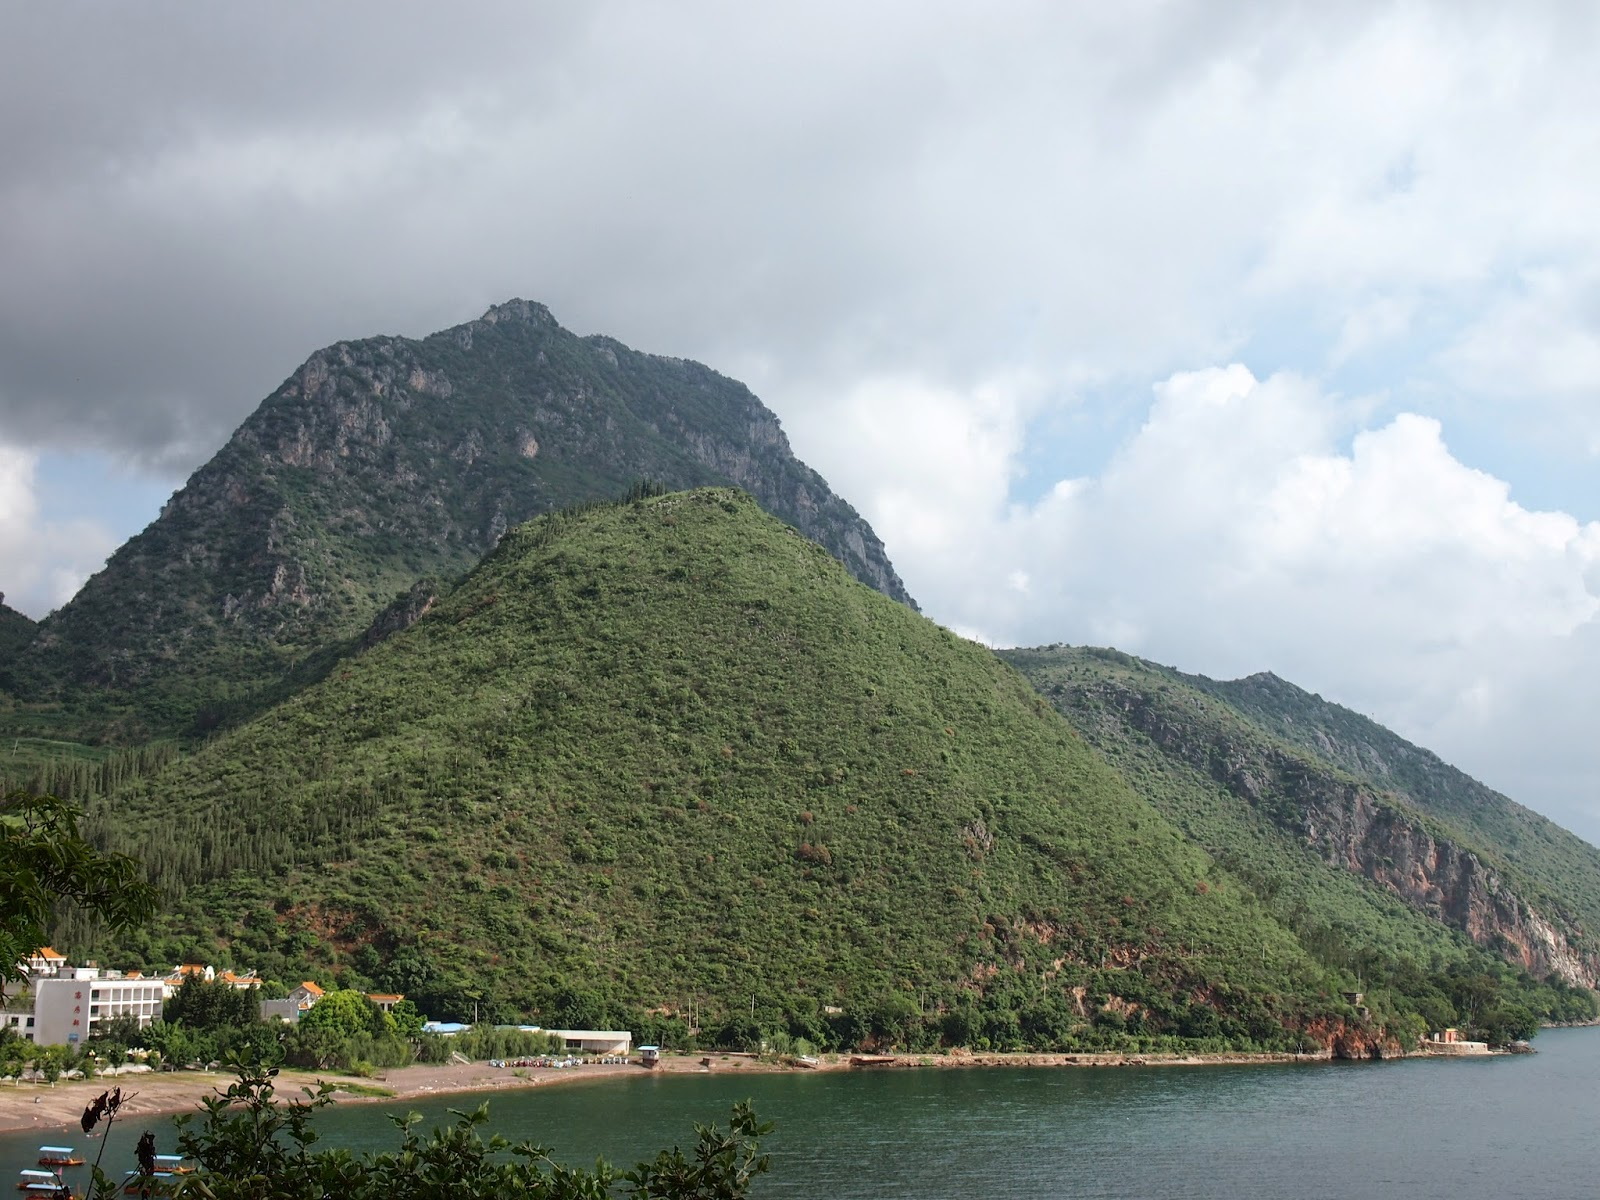 A mountain that looks like a boob with a nipple in Fu Xian Lake